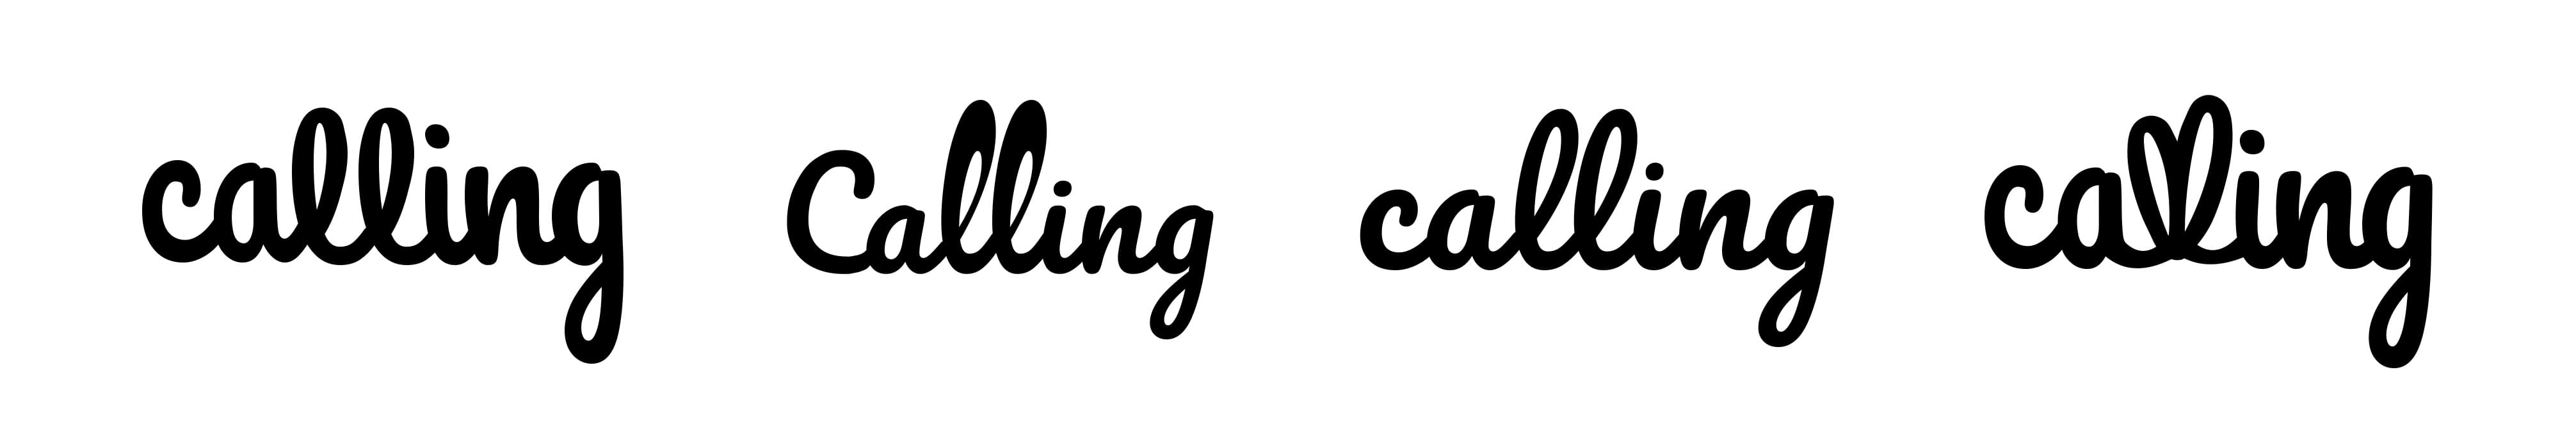 Four different version of the Calling logo is displayed in both black and grey. The logos show looping L's and L's that are shaped like a heart.